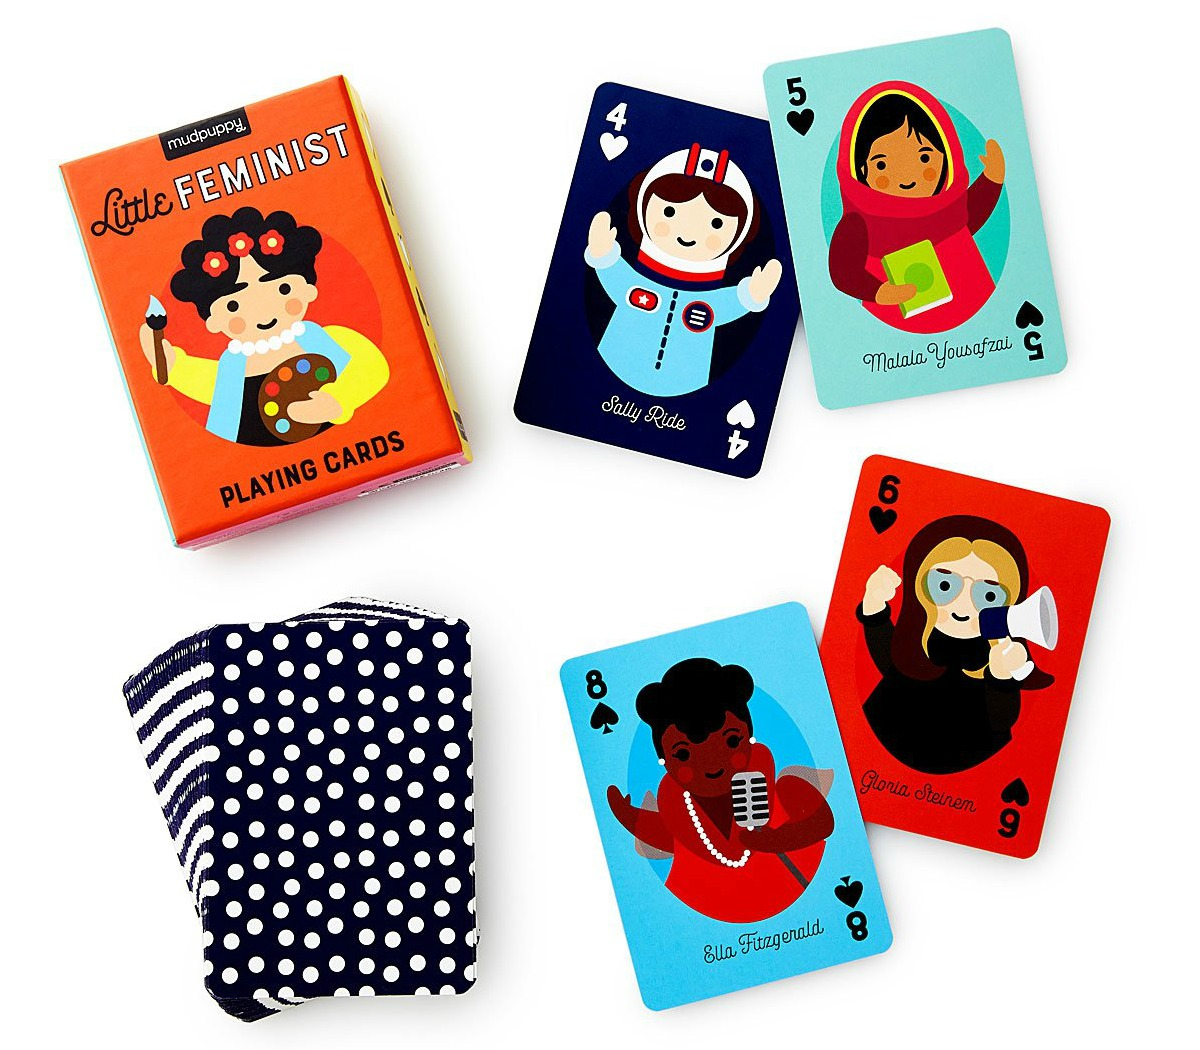 Little Feminist Card Deck | UncommonGoods